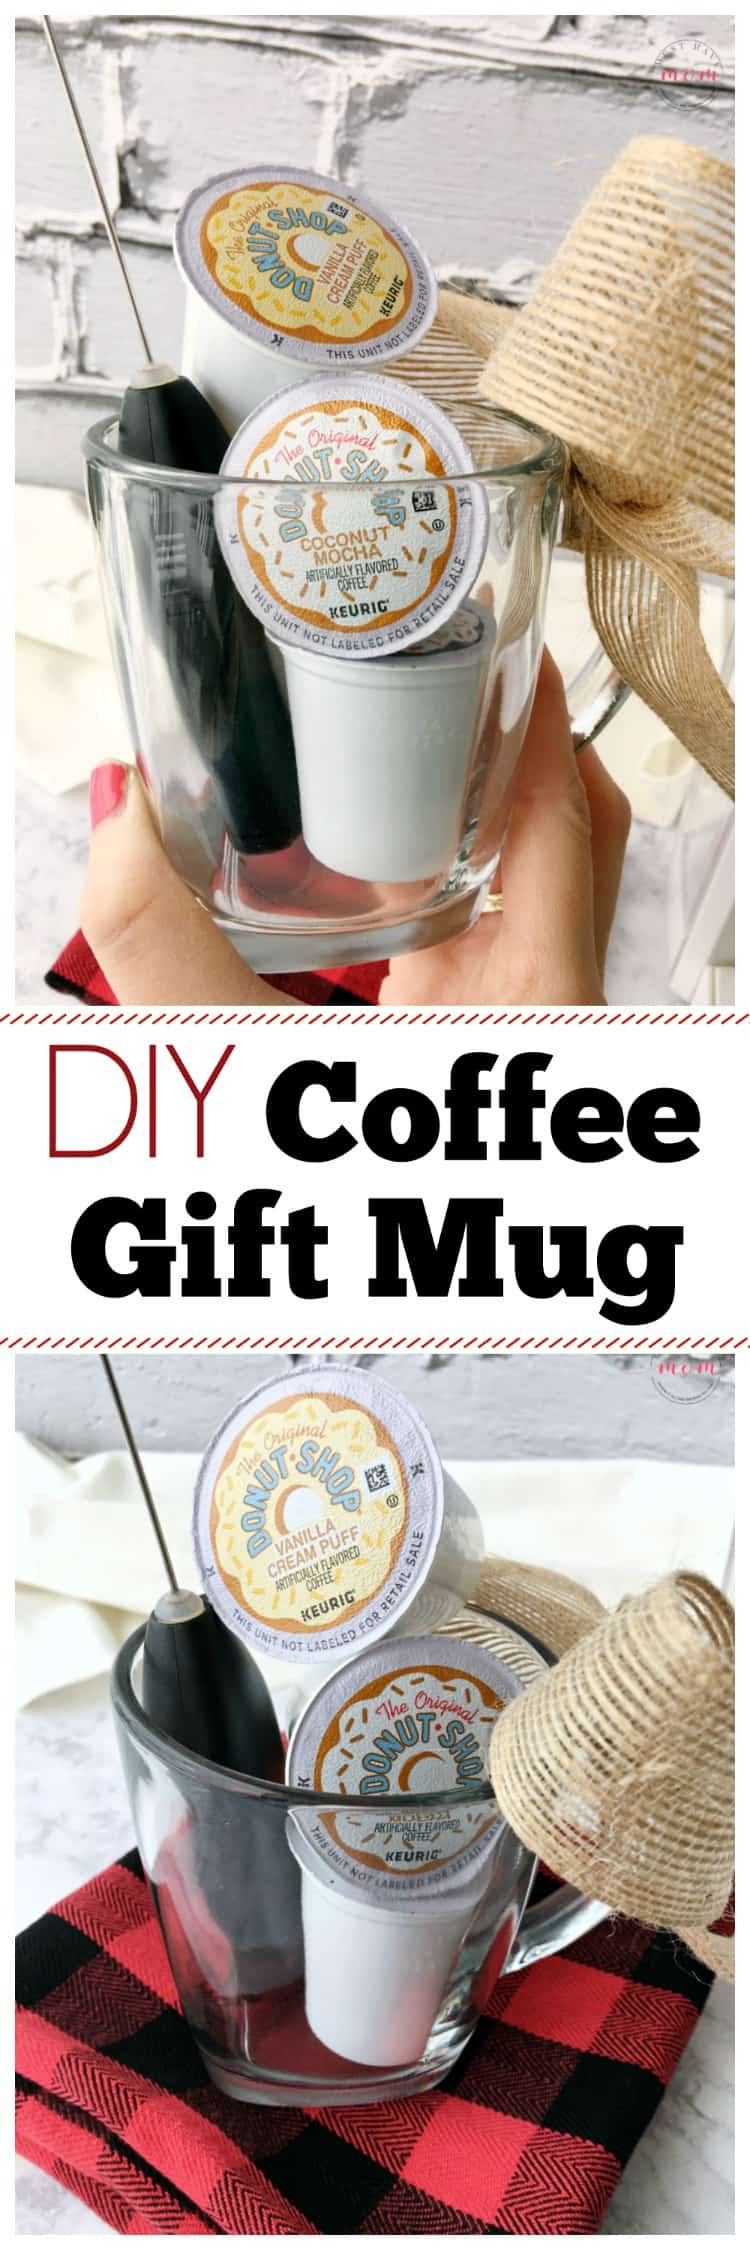 Best ideas about Coffee Mug Gift Ideas . Save or Pin Perfect DIY Coffee Gifts 1 Day Keurig Sale Must Have Mom Now.